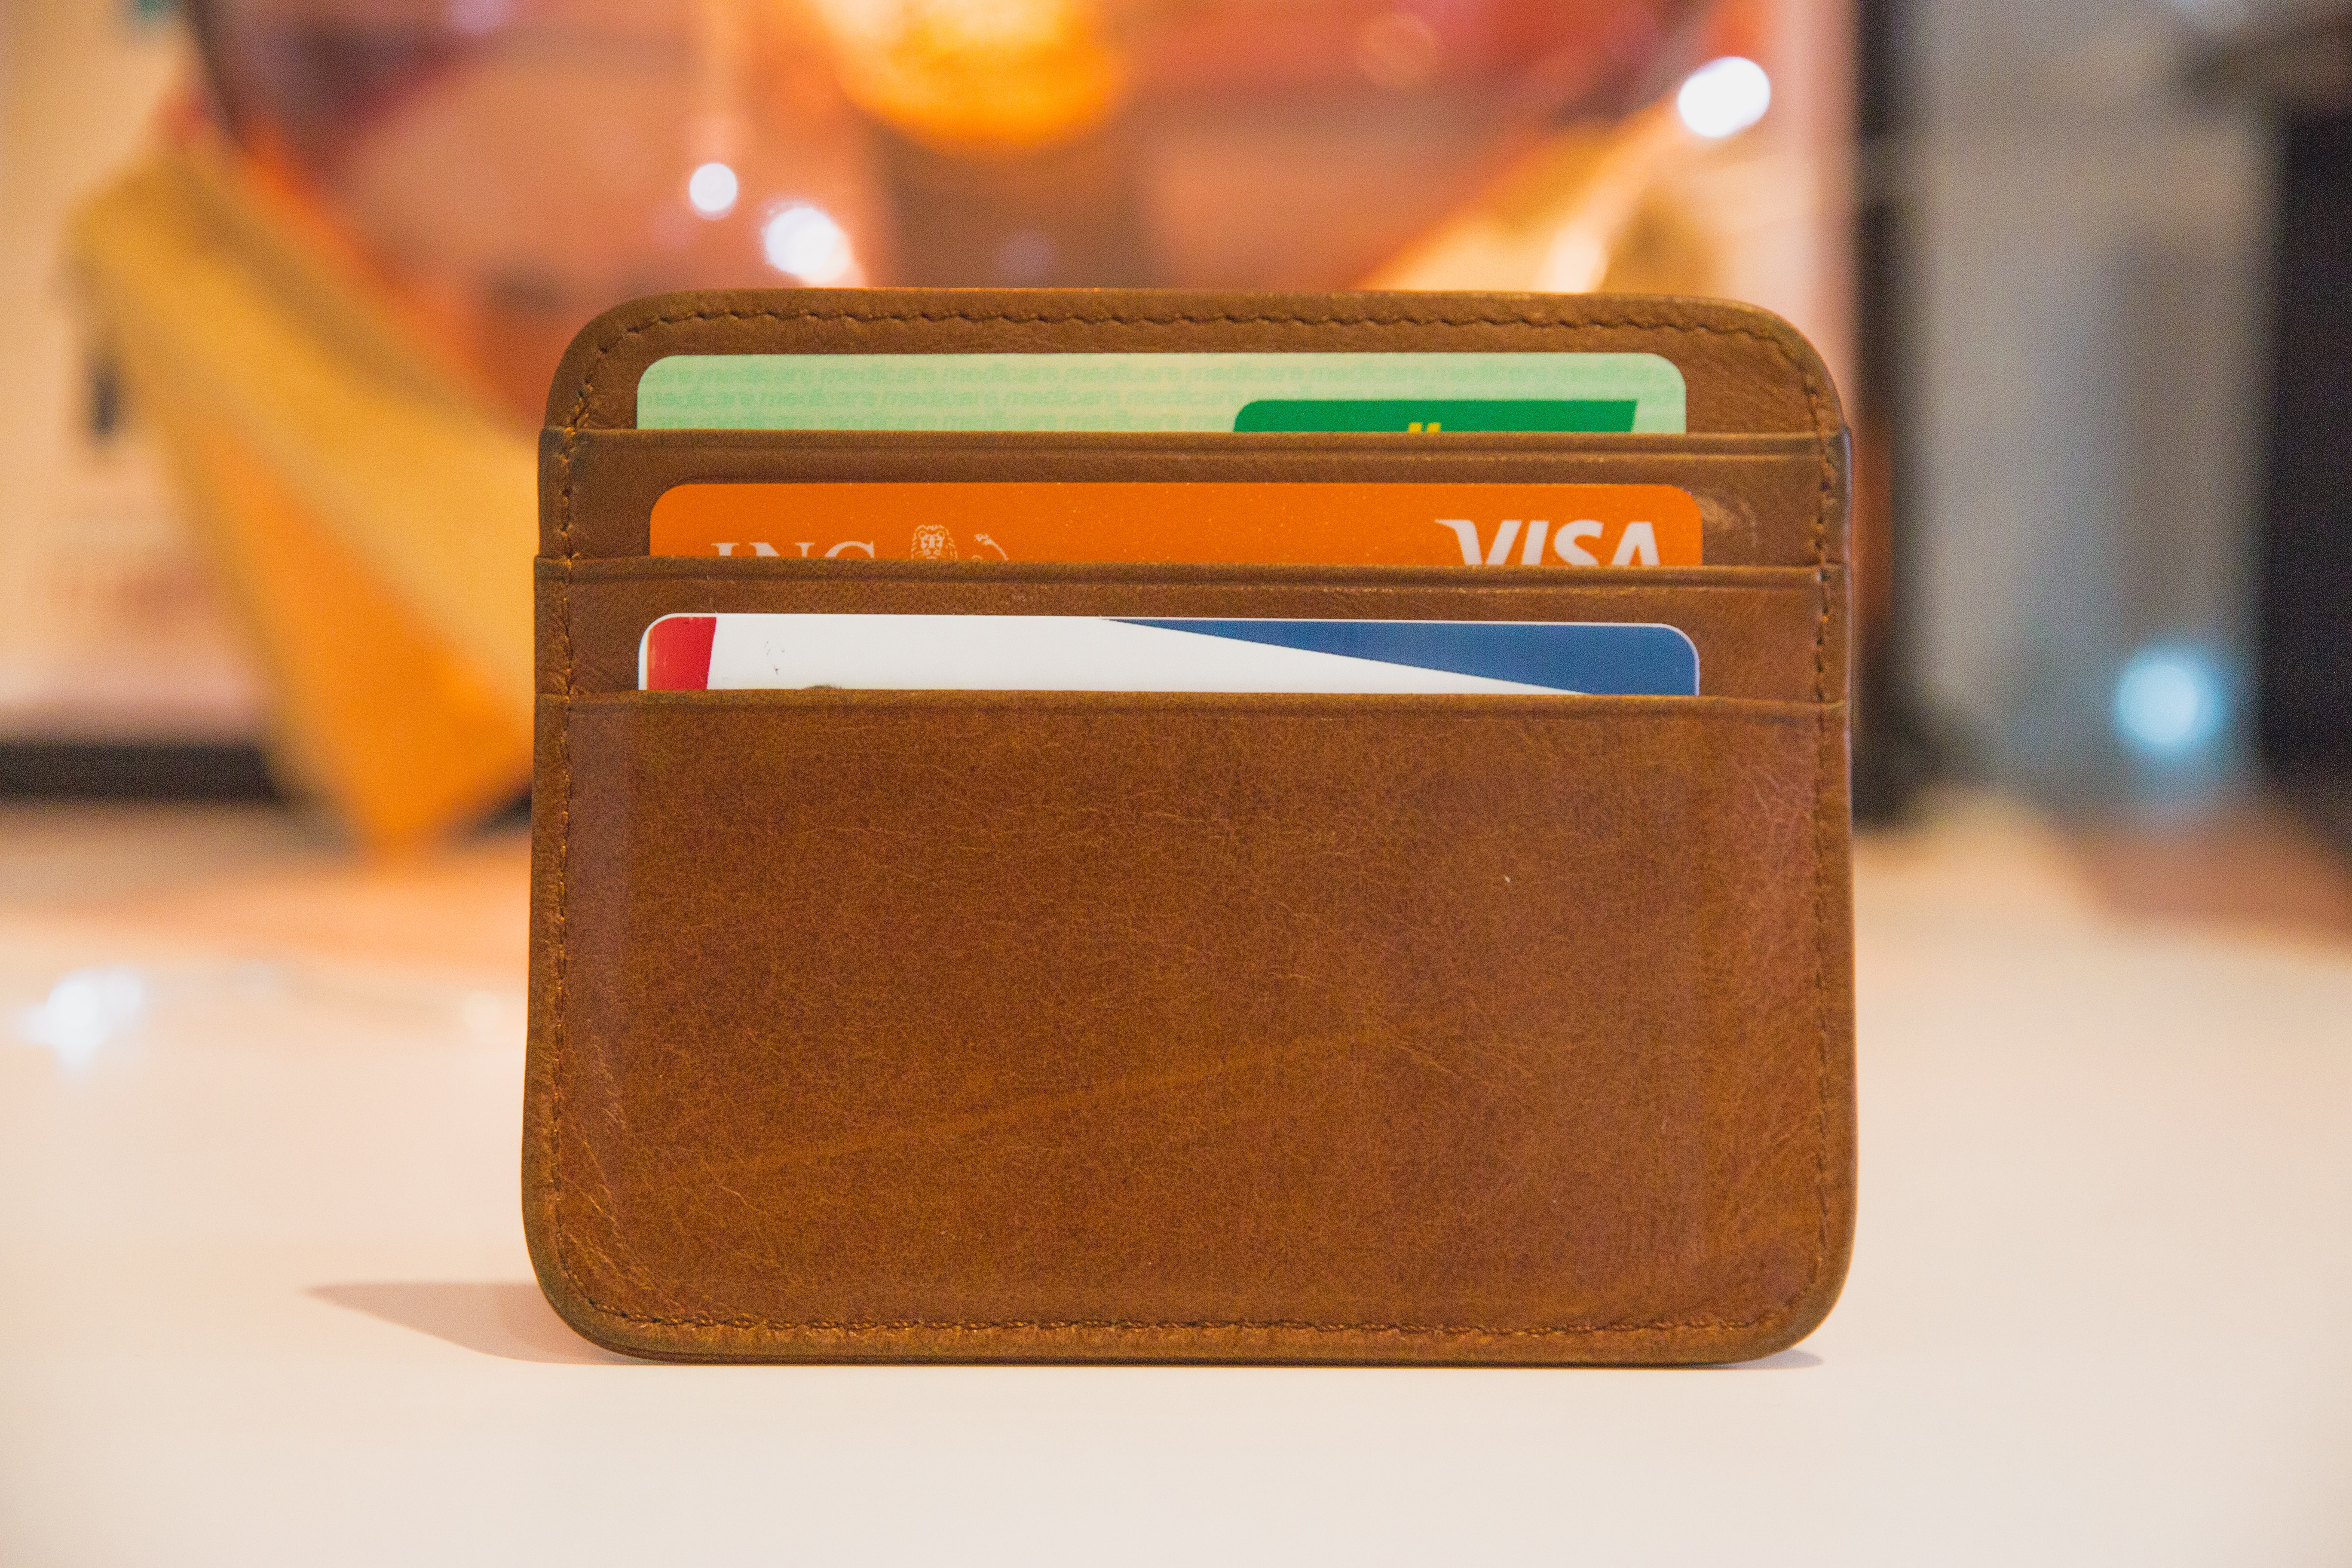 5 Best Credit Cards for Bad Credit in 2021